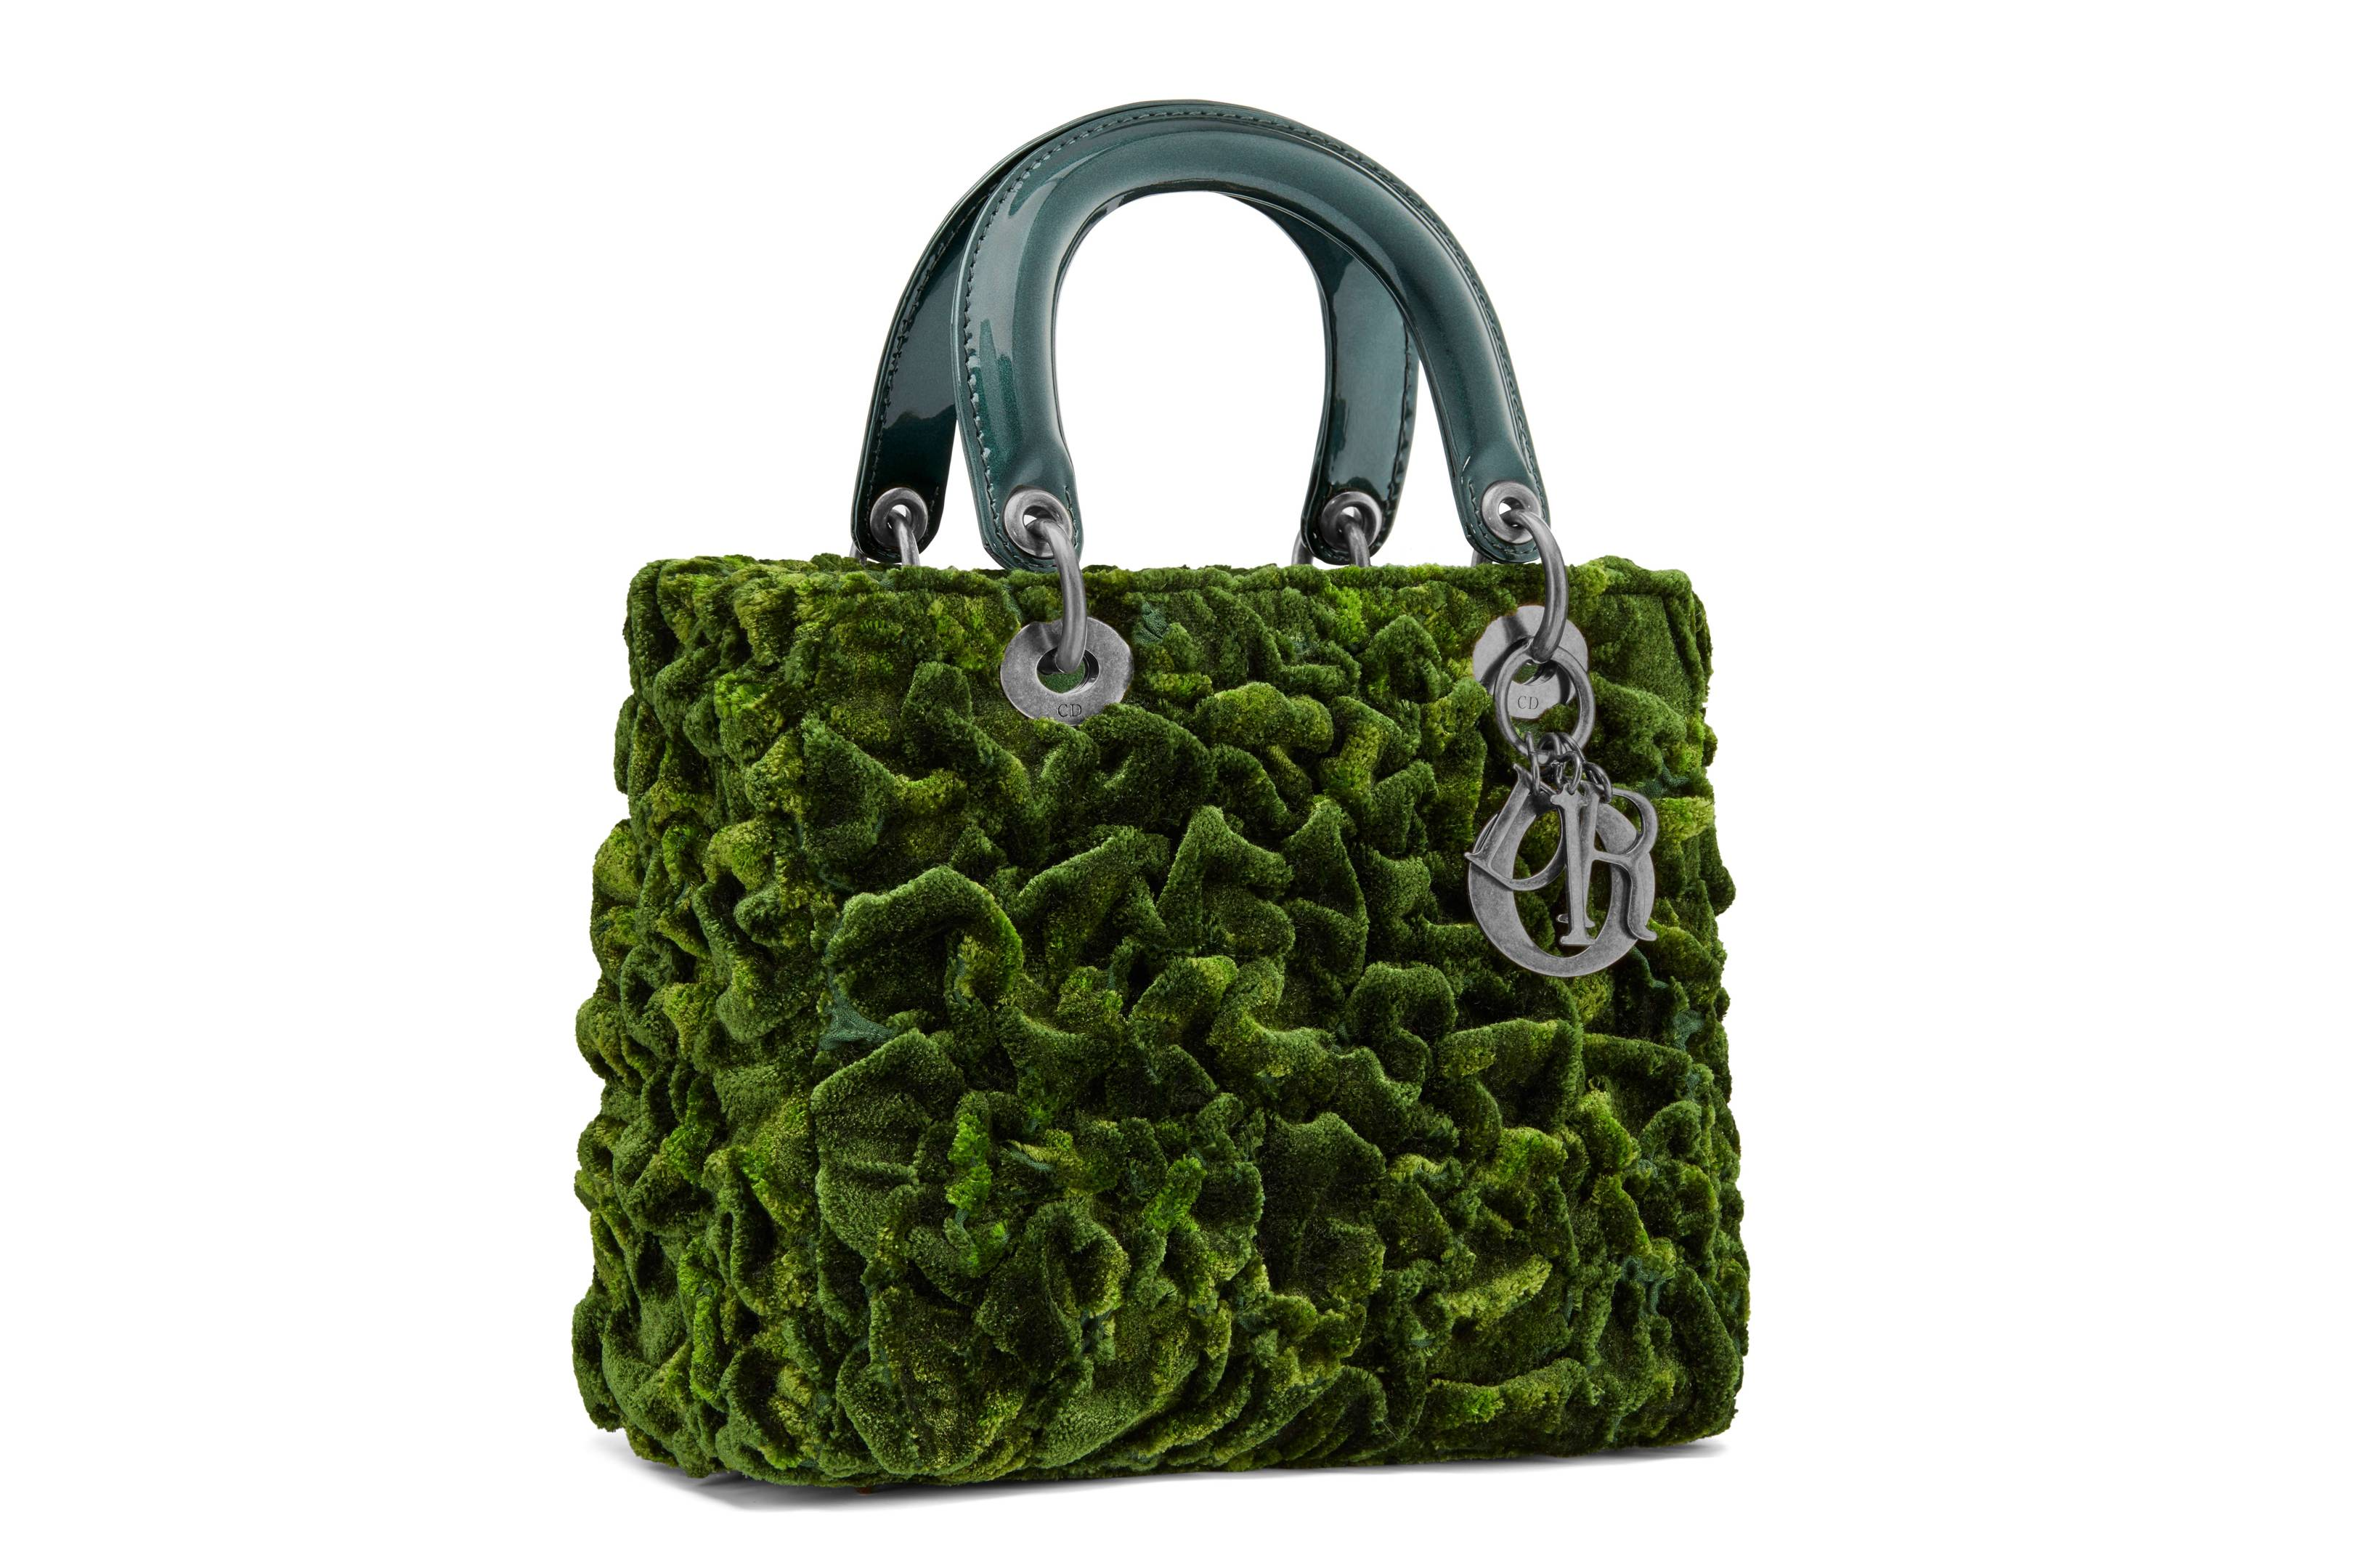 221207fd0d8b Handbag History  13 Art and Fashion Collaborations You Must Know ...